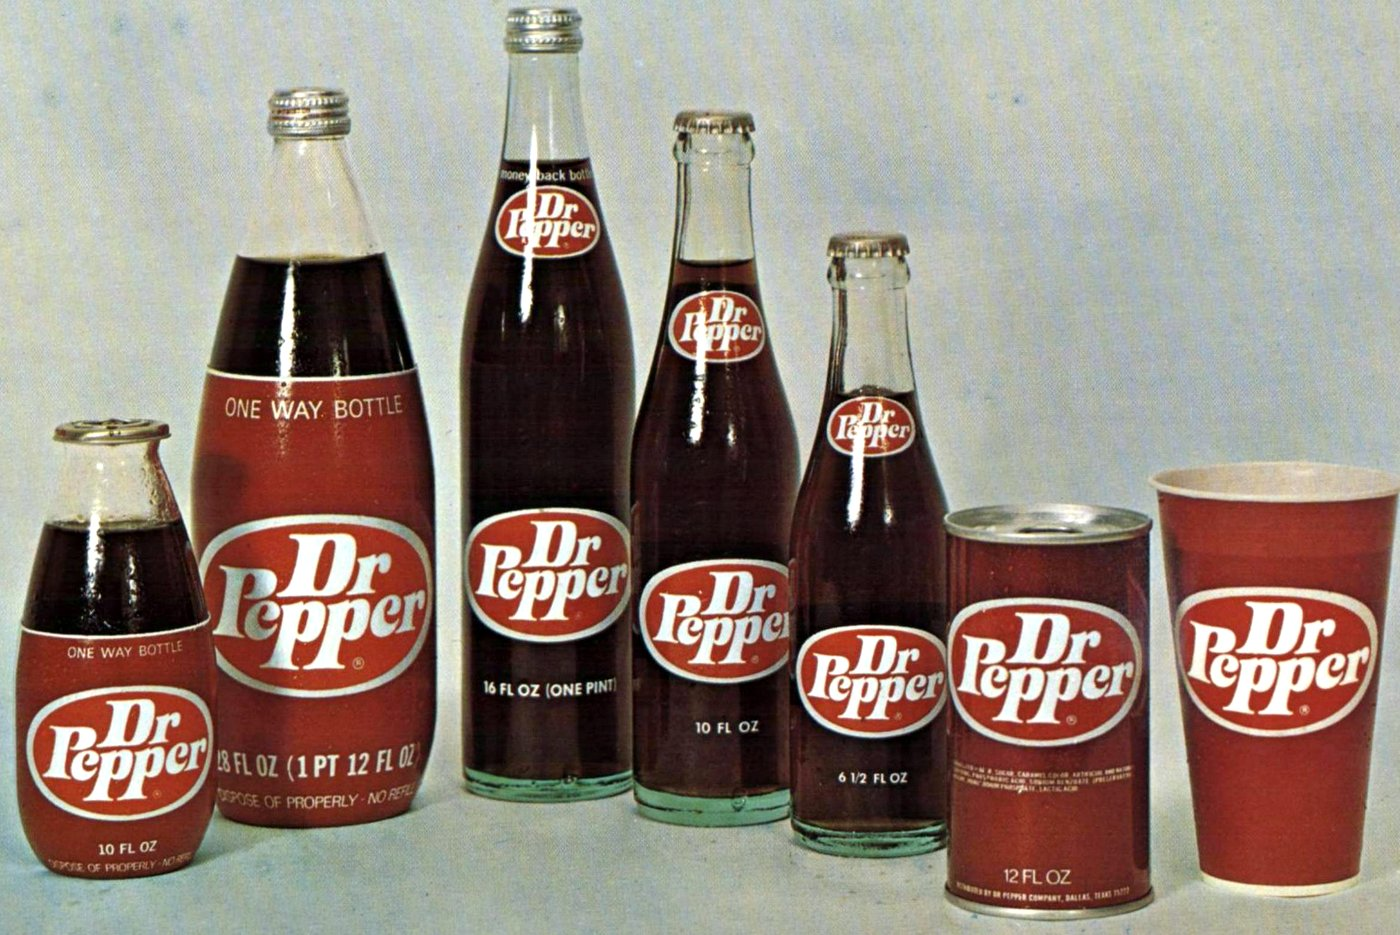 Dr Pepper original soft drinks - Bottles cans and cups (1971)